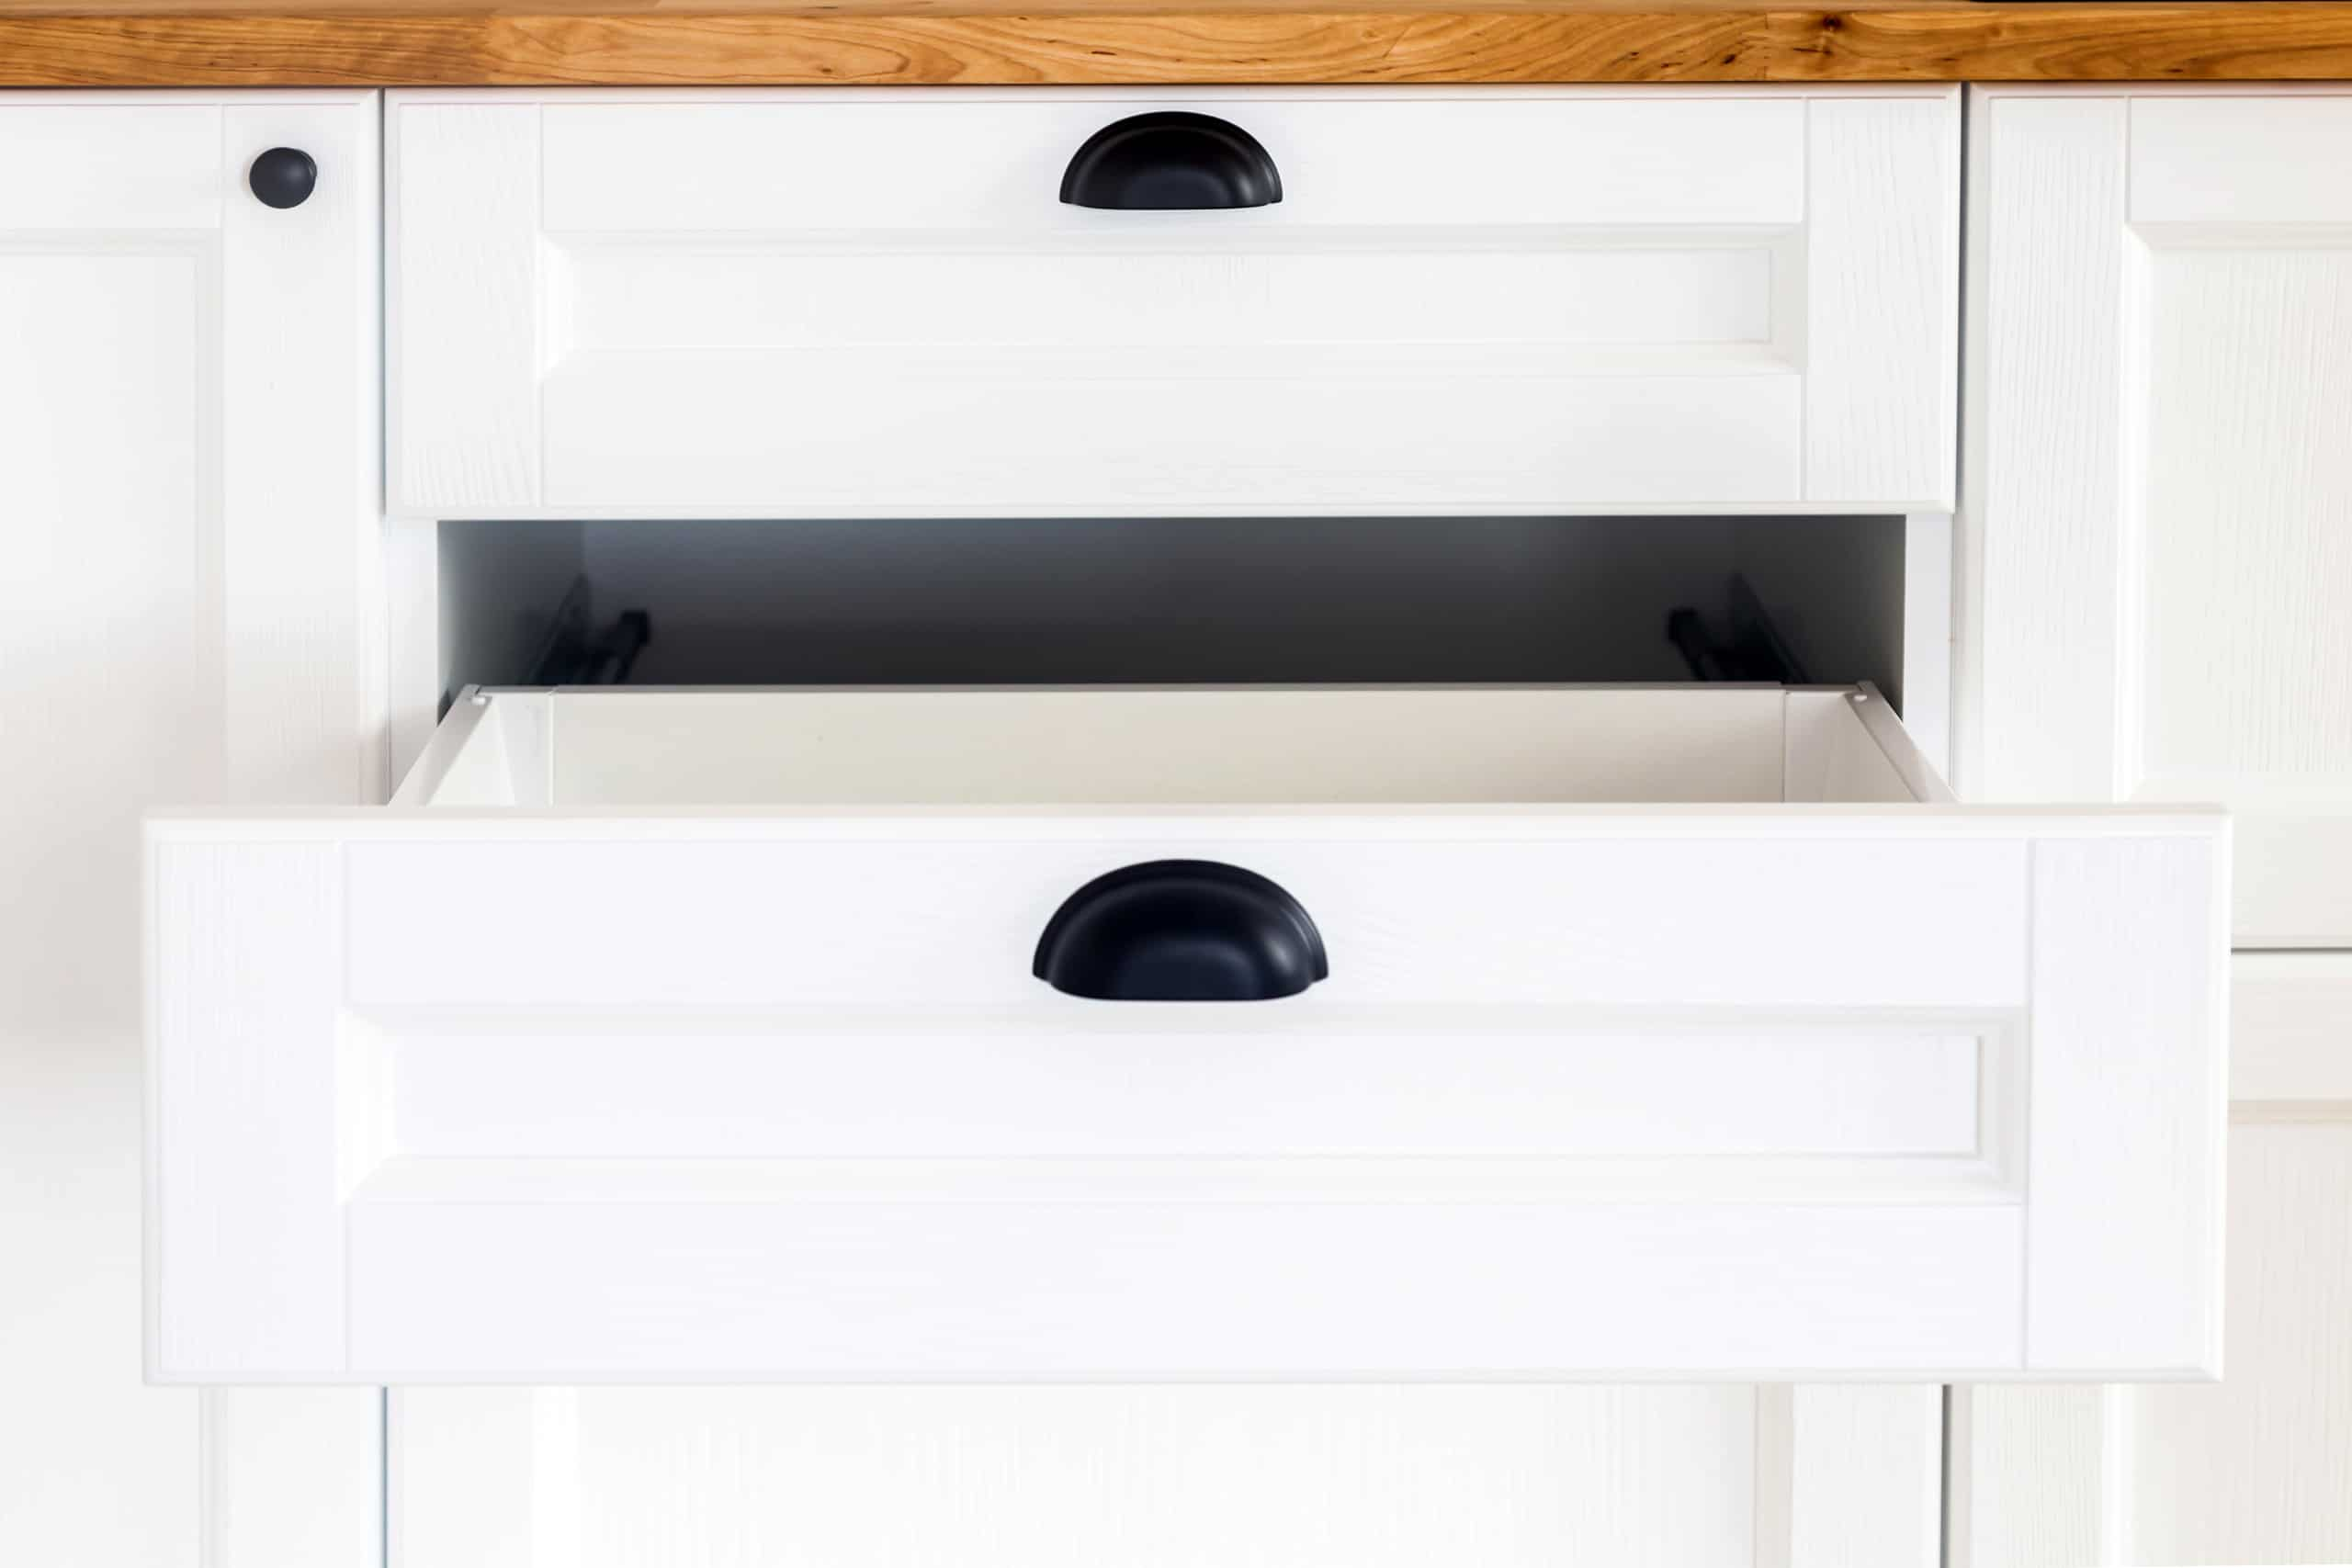 Cabinet Hardware Placement Guide